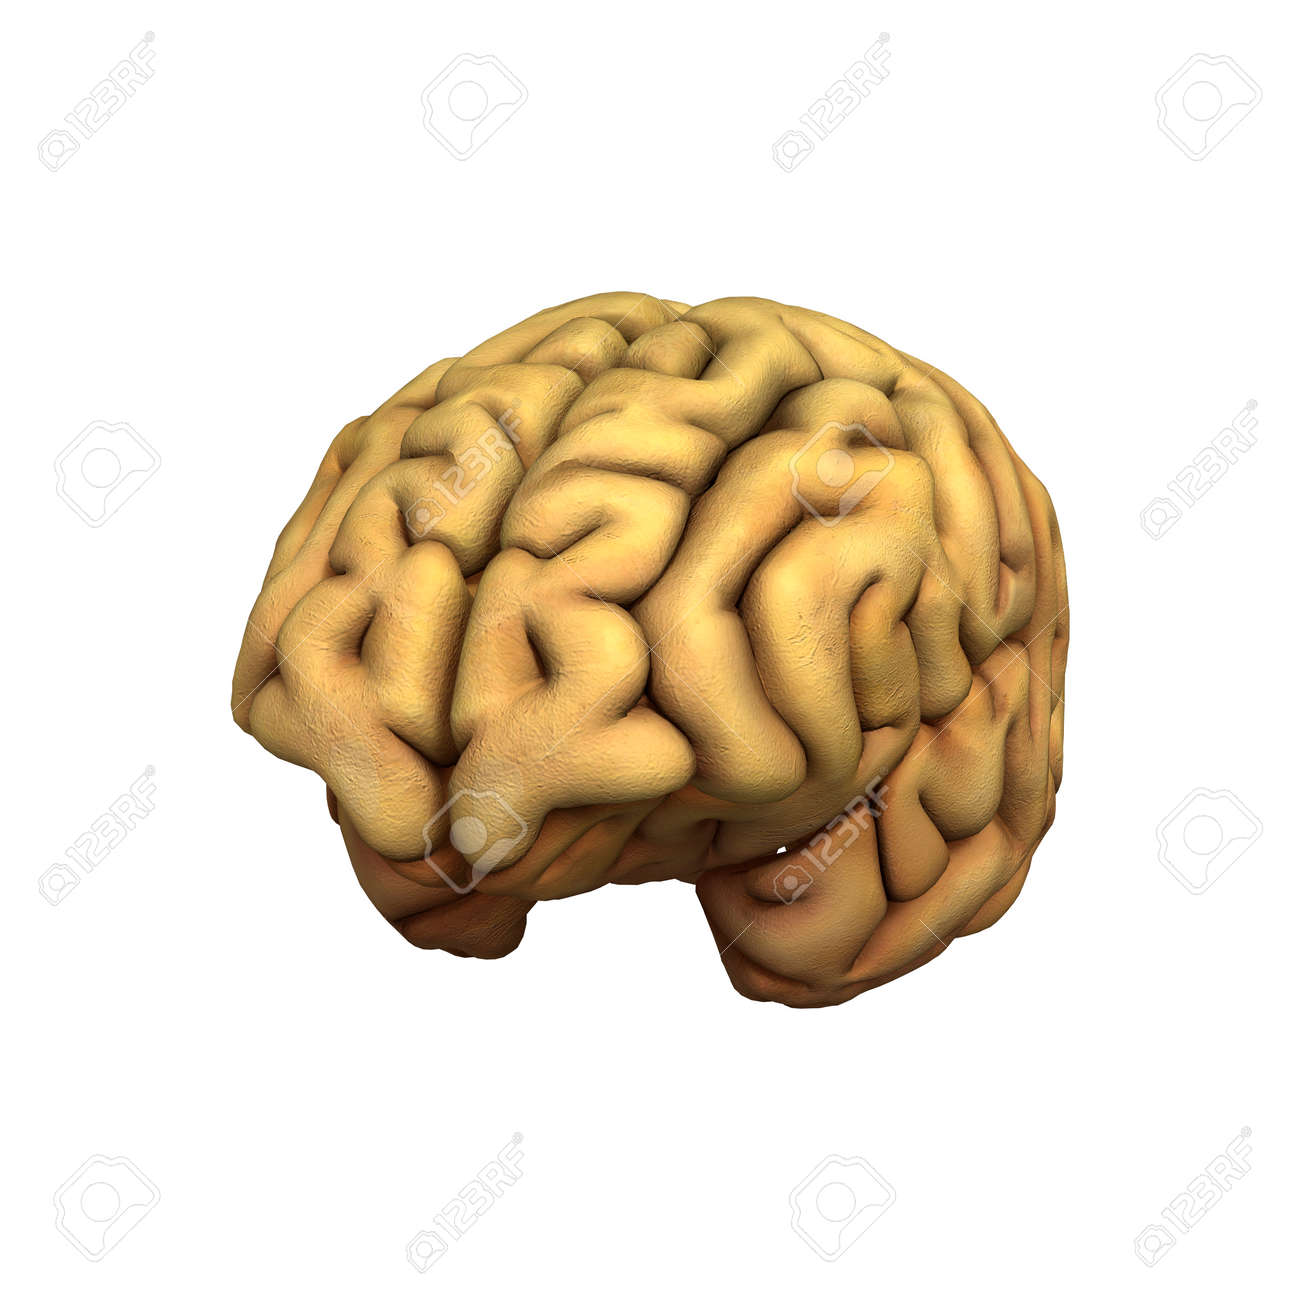 3d digital render of a human brain isolated on white background